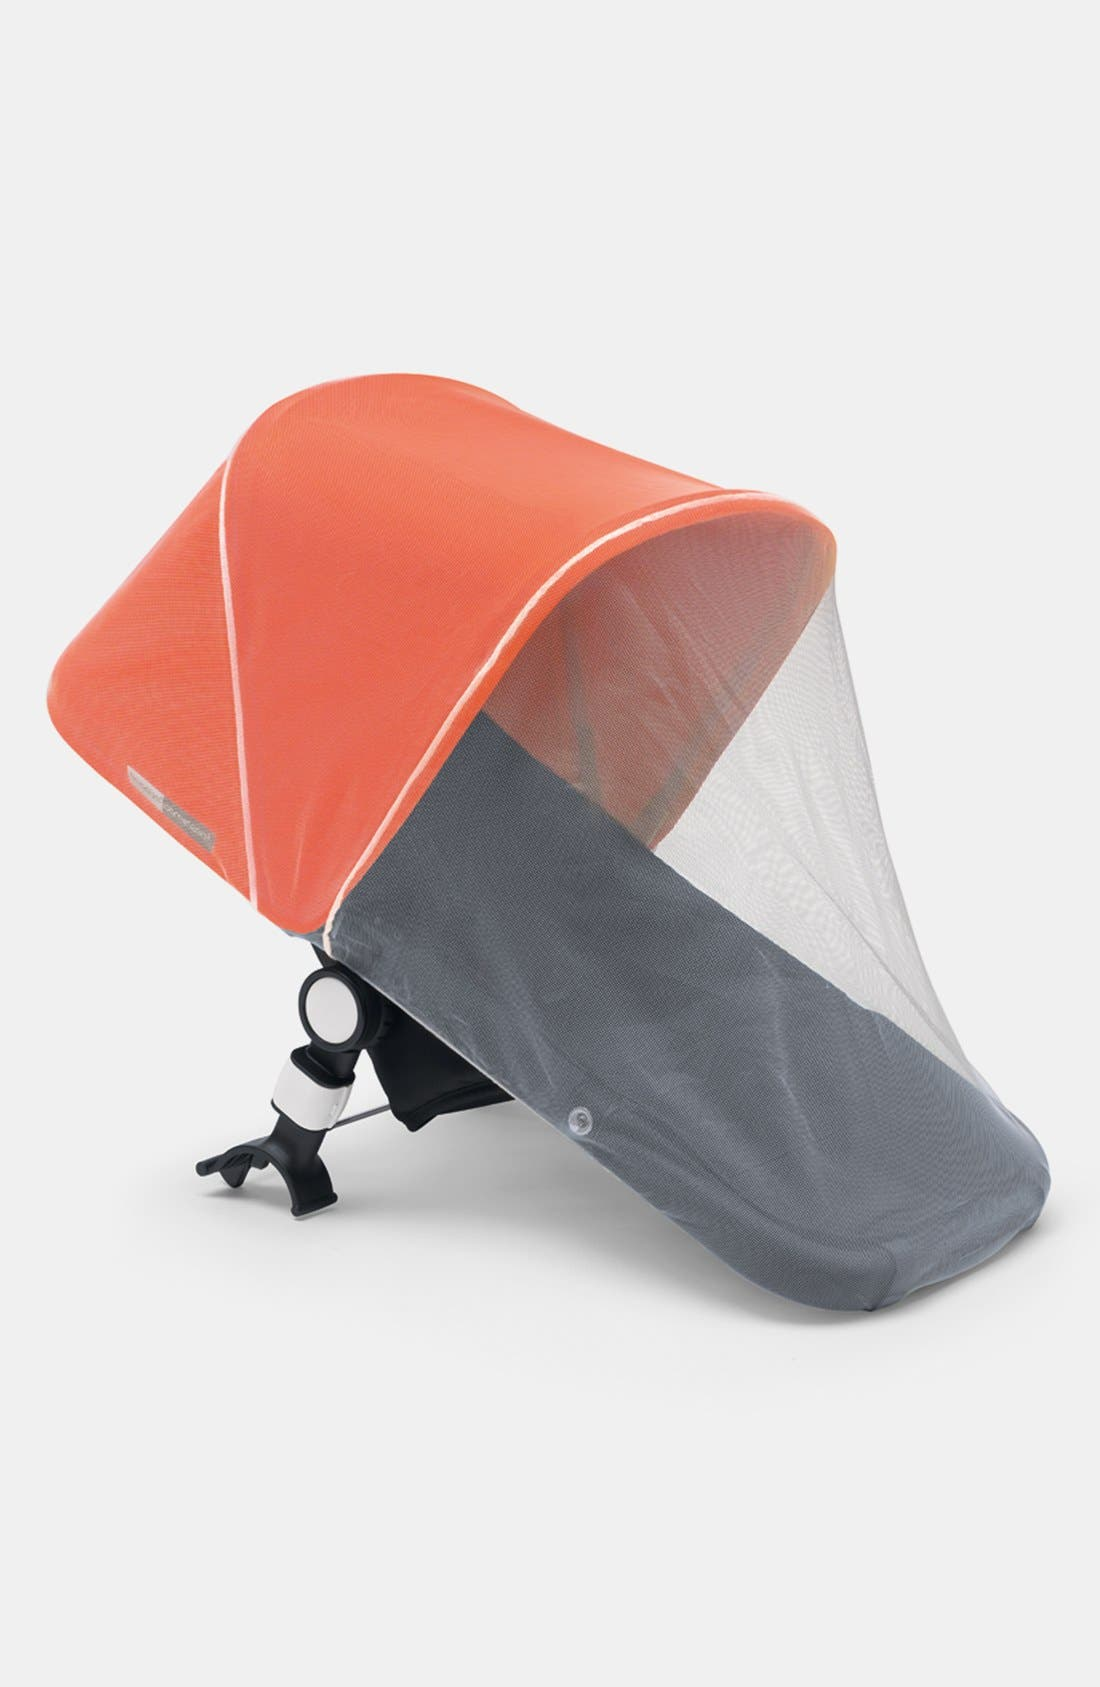 Stroller Mosquito Net,                             Main thumbnail 1, color,                             NO COLOR